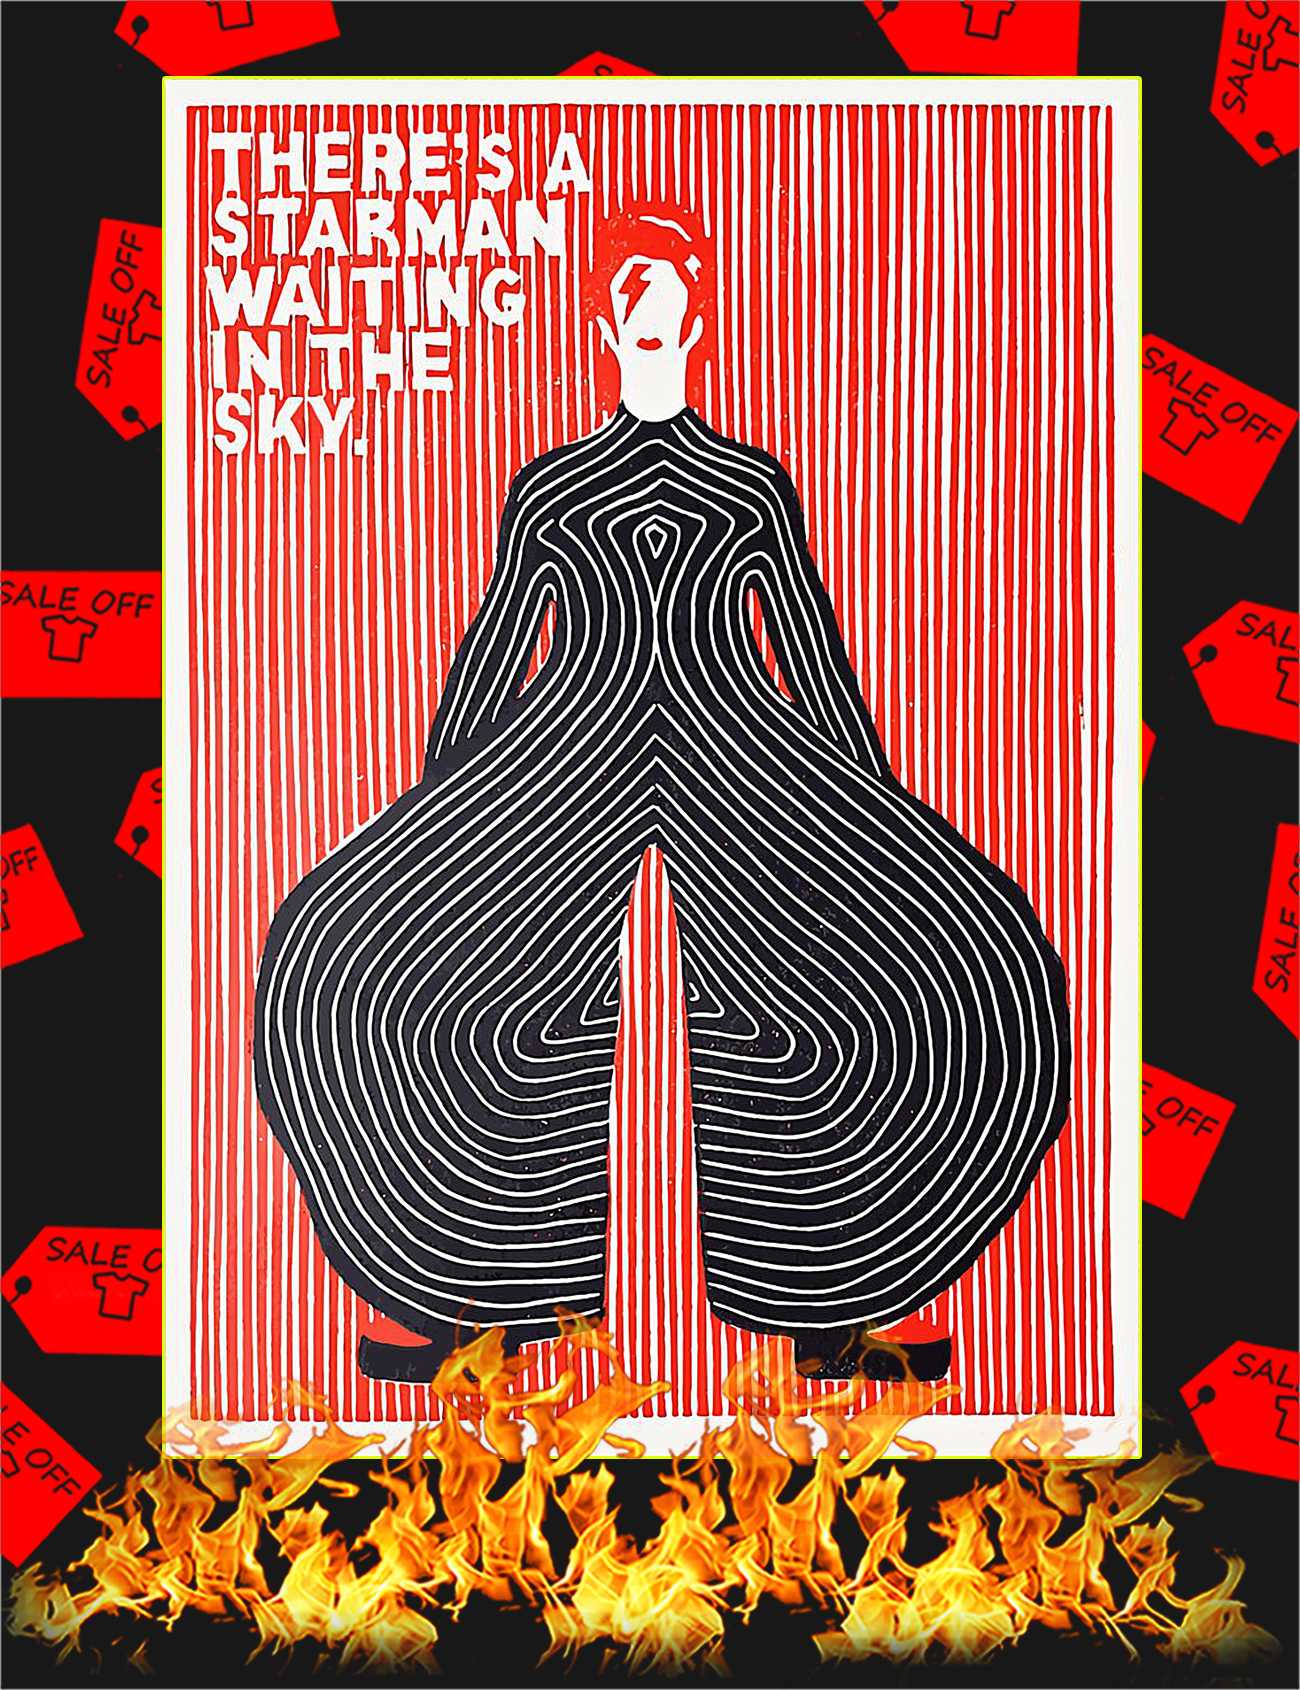 There's a starman waiting in the sky poster - A4